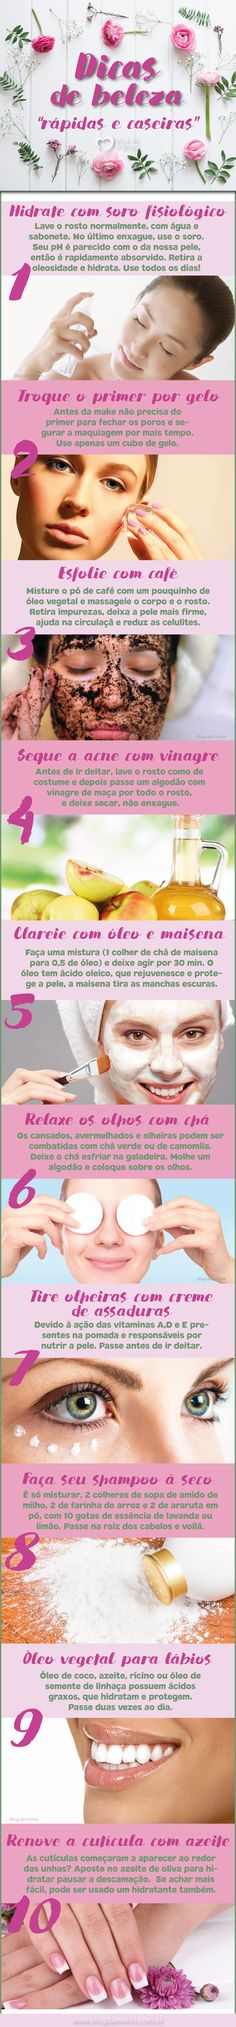 "As horas, os dias, os meses passam e aquele ""dia de beleza"" vai sempre sendo deixado para depois. Seja por falta de tempo, grana ou os dois! Mas para ficar ainda mais linda existem truques rápidos que podem ser feitos… Beauty Care, Diy Beauty, Beauty Skin, Health And Beauty, Beauty Hacks, How To Make Hair, Make Up, Tips Belleza, Belleza Natural"